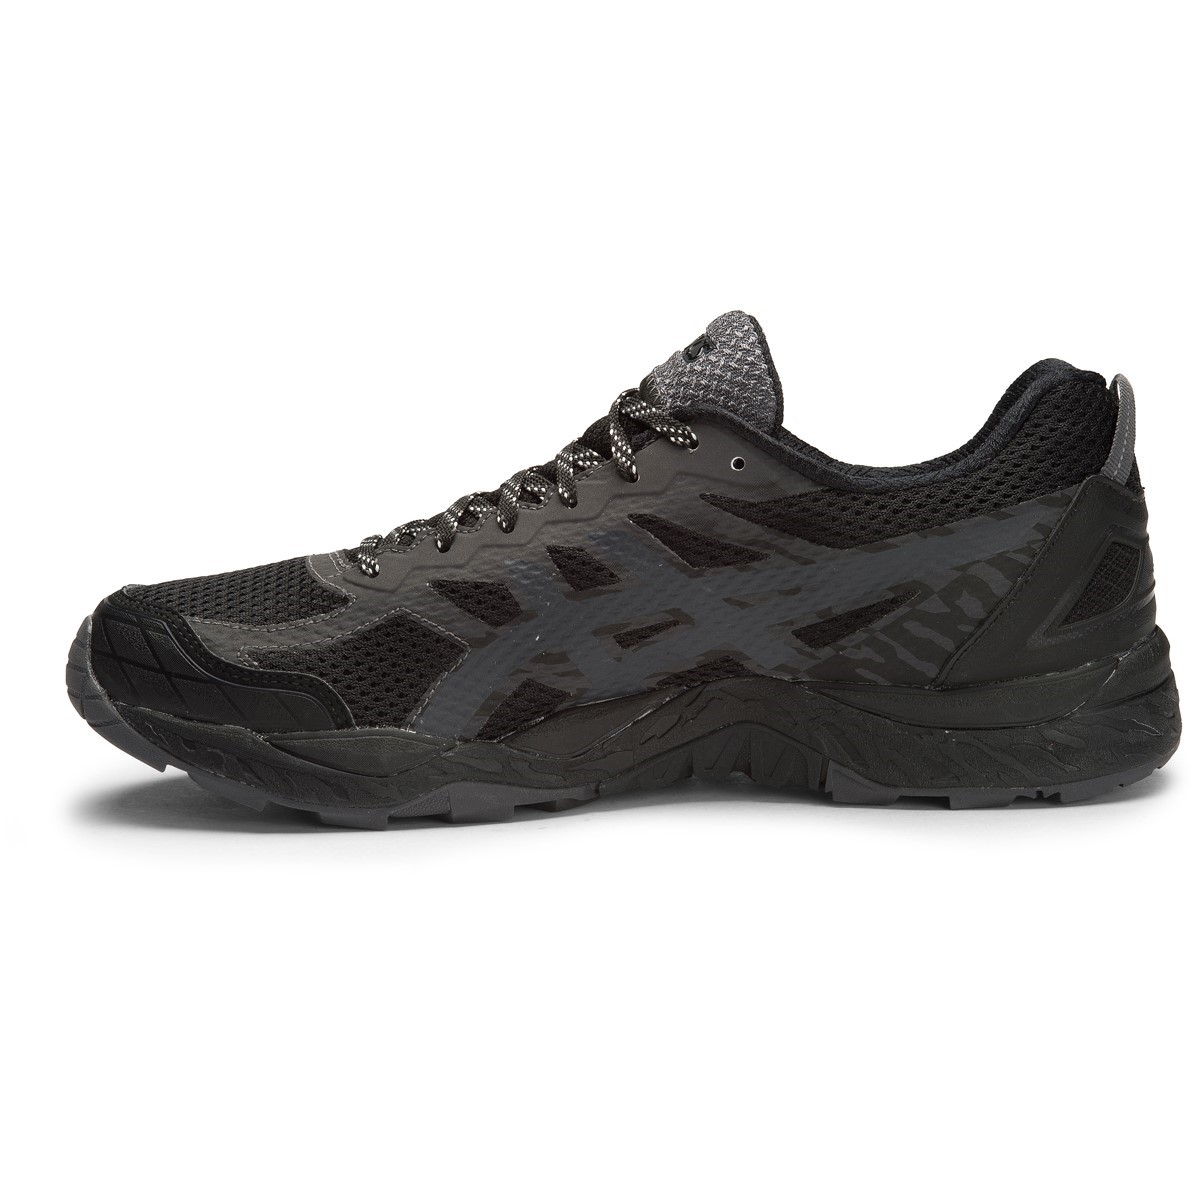 asics gel fuji trabuco 5 gtx mens trail running shoes black dark steel silver online. Black Bedroom Furniture Sets. Home Design Ideas